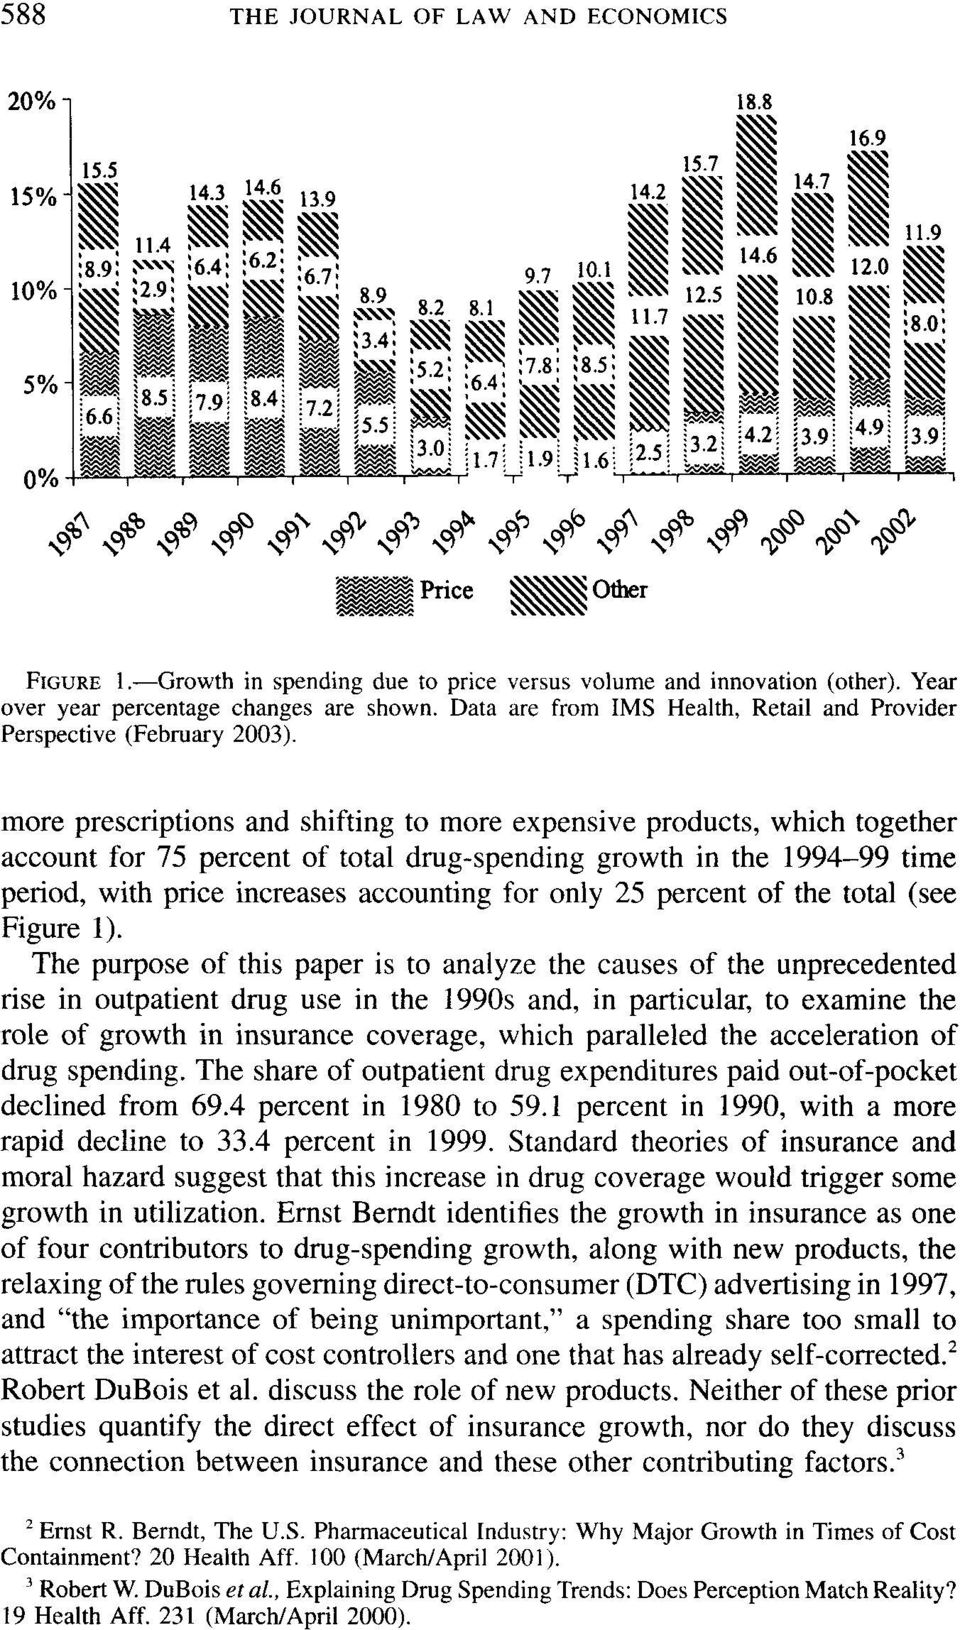 more prescriptions and shifting to more expensive products, which together account for 75 percent of total drug-spending growth in the 1994-99 time period, with price increases accounting for only 25